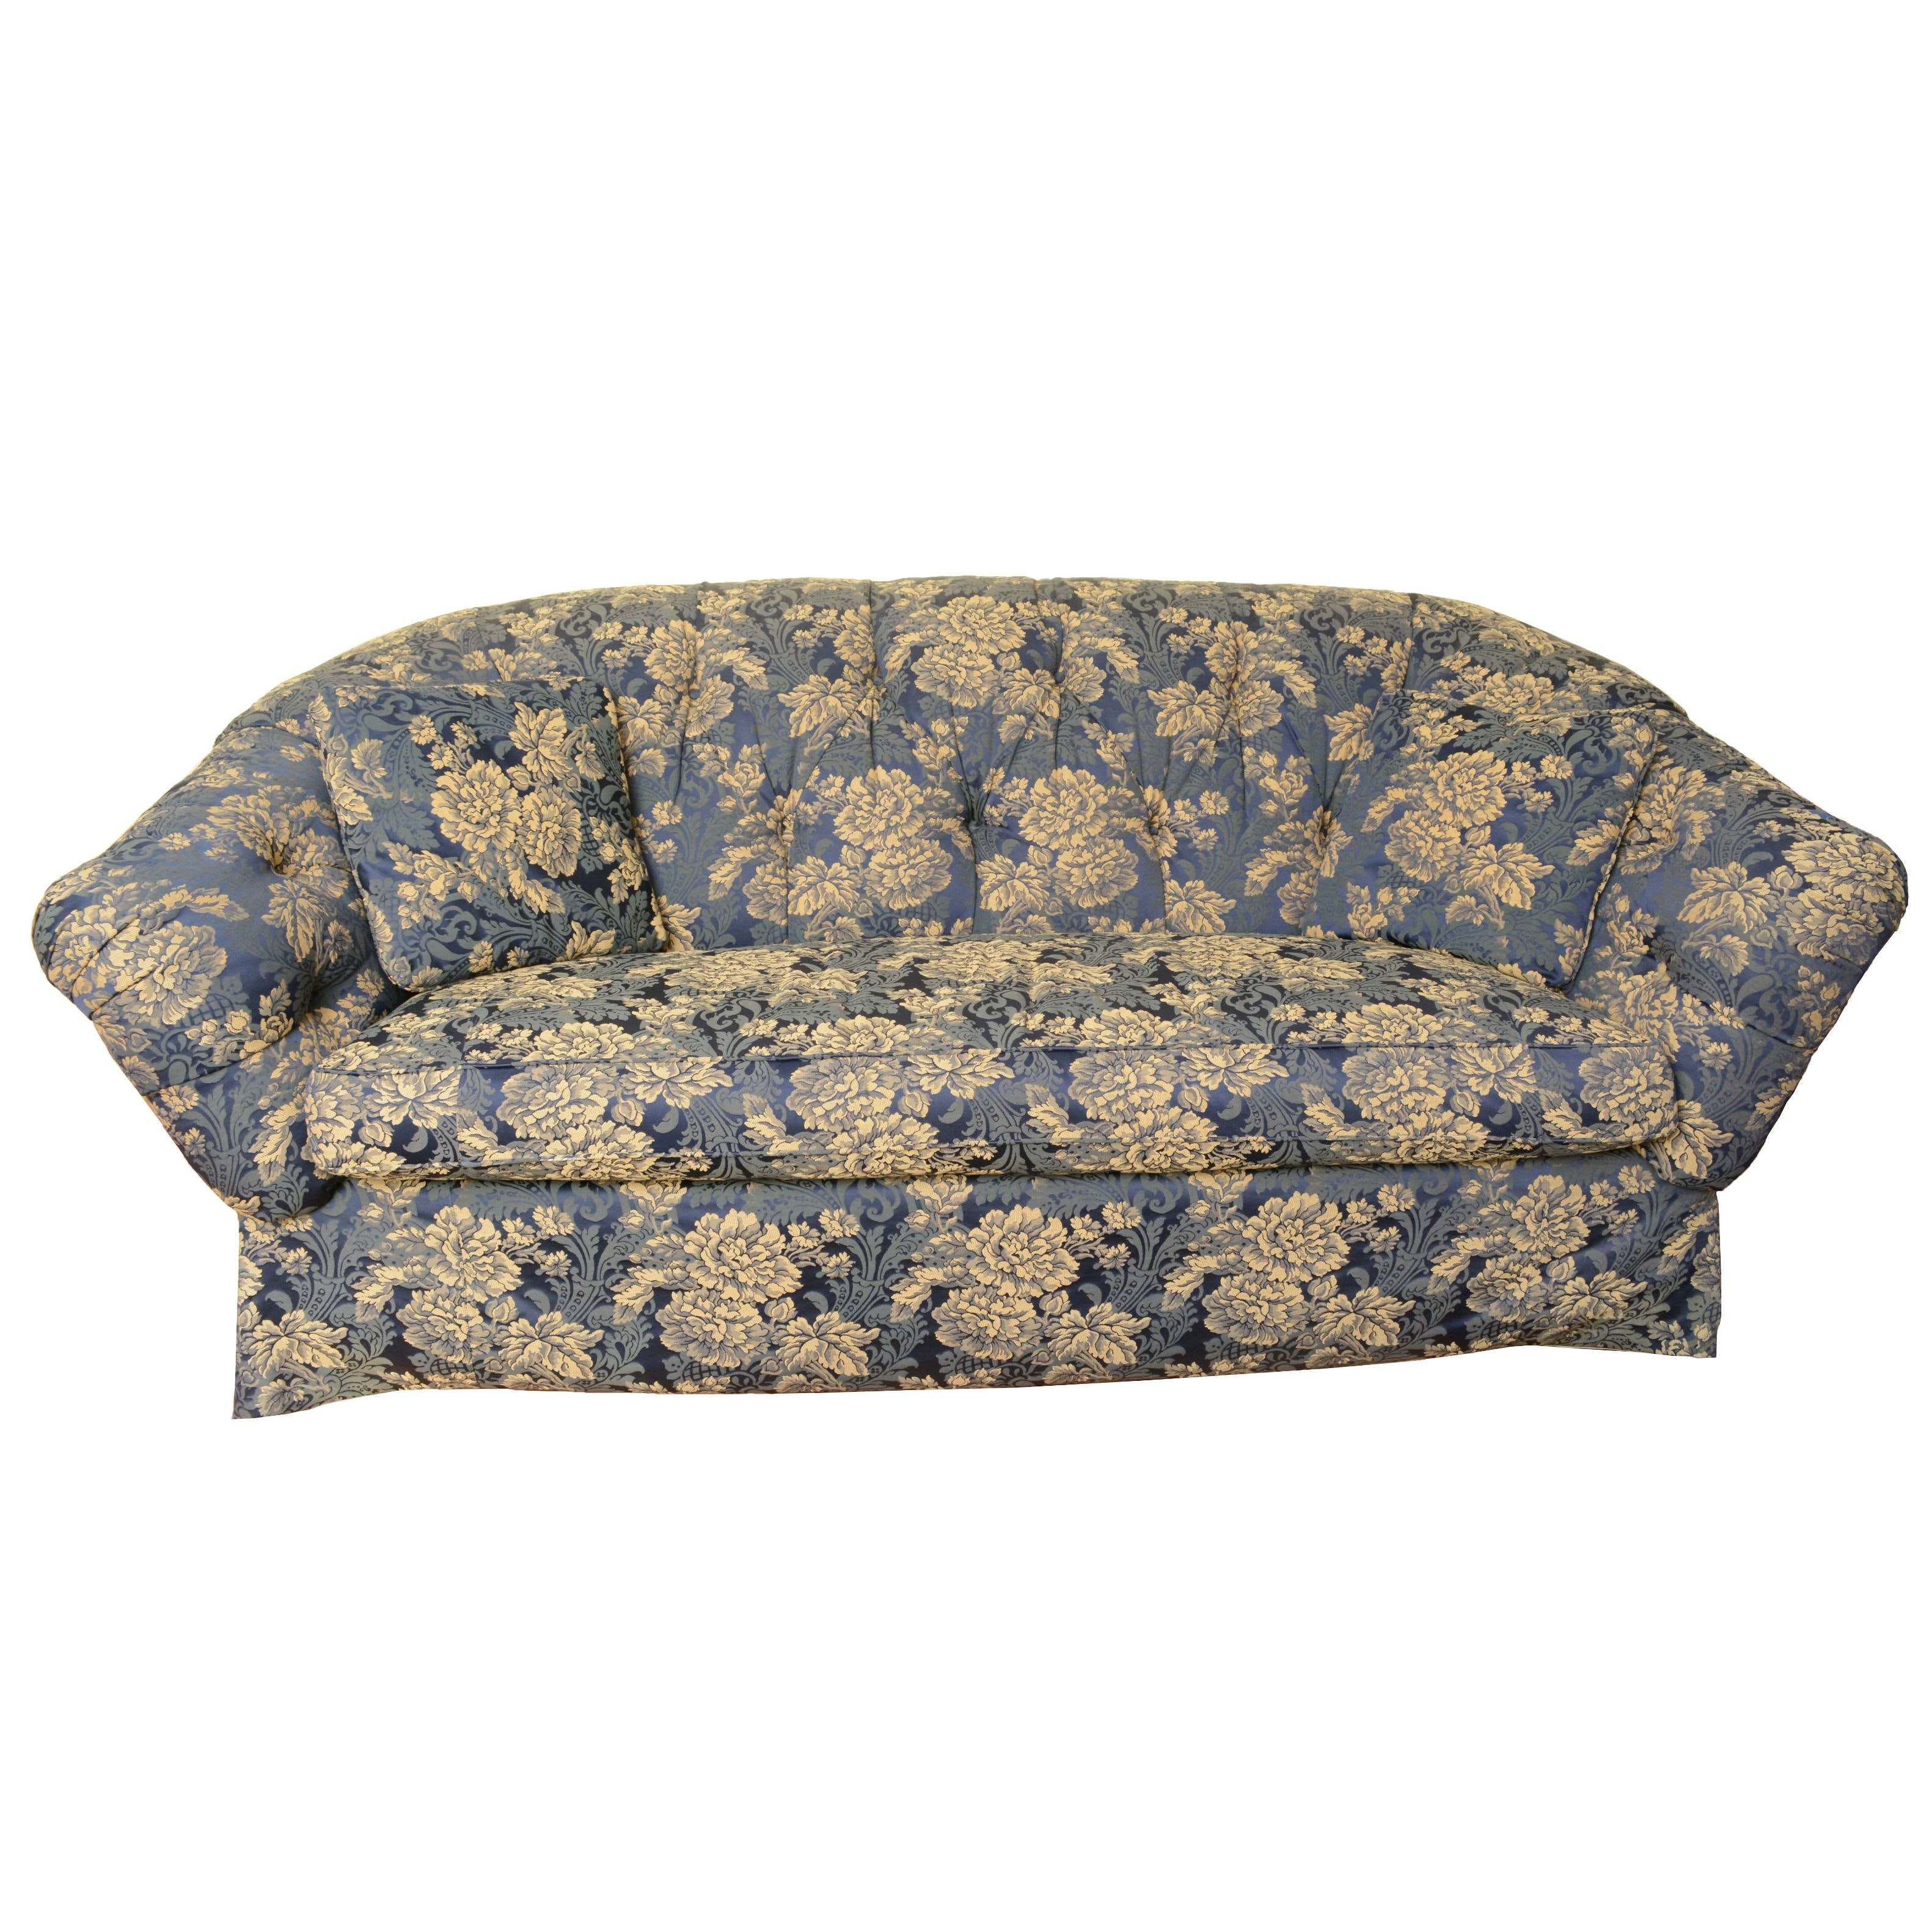 Floral Upholstered Sofa by Frederick Edward